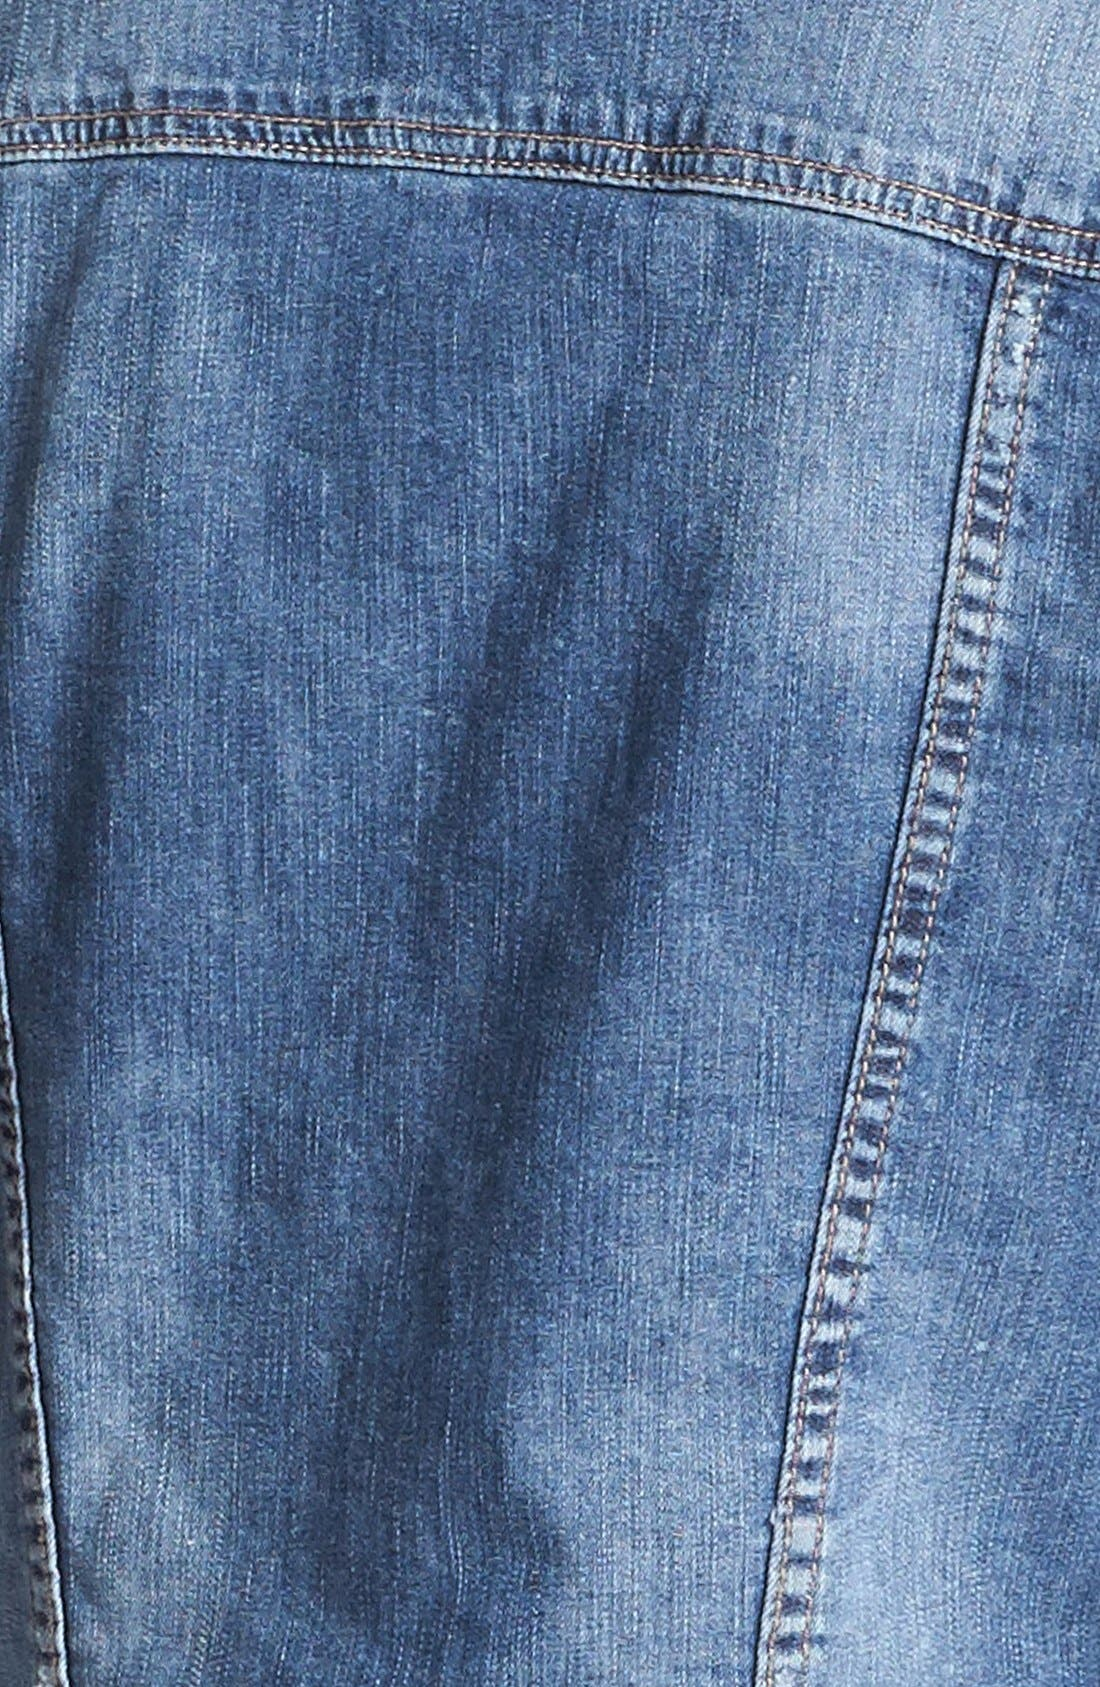 Alternate Image 3  - KUT from the Kloth Denim Jacket (Petite)